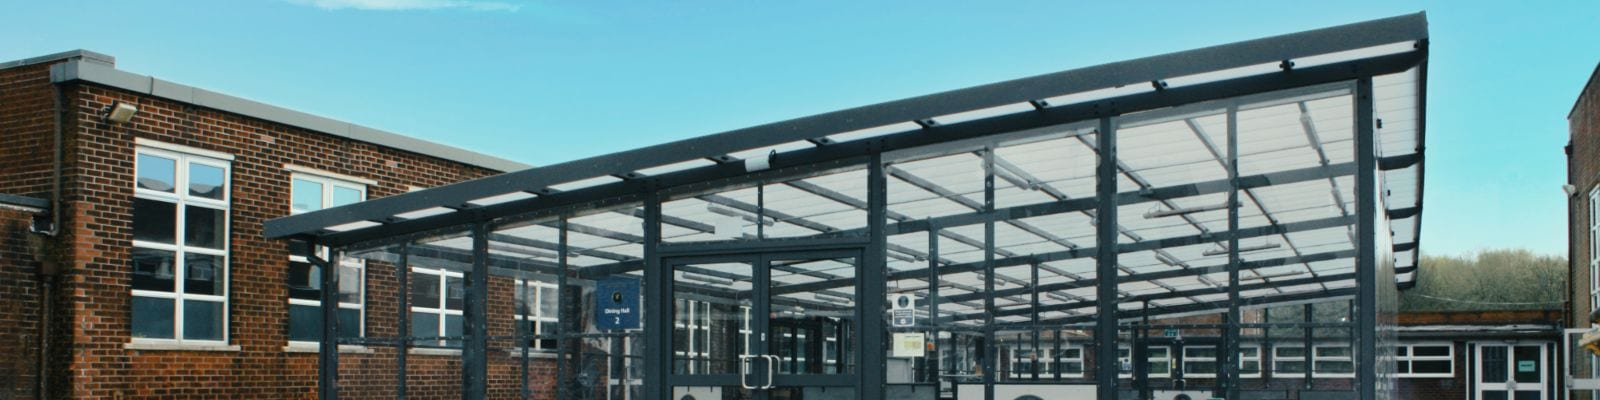 Canopy with sides at St Gabriel's High School